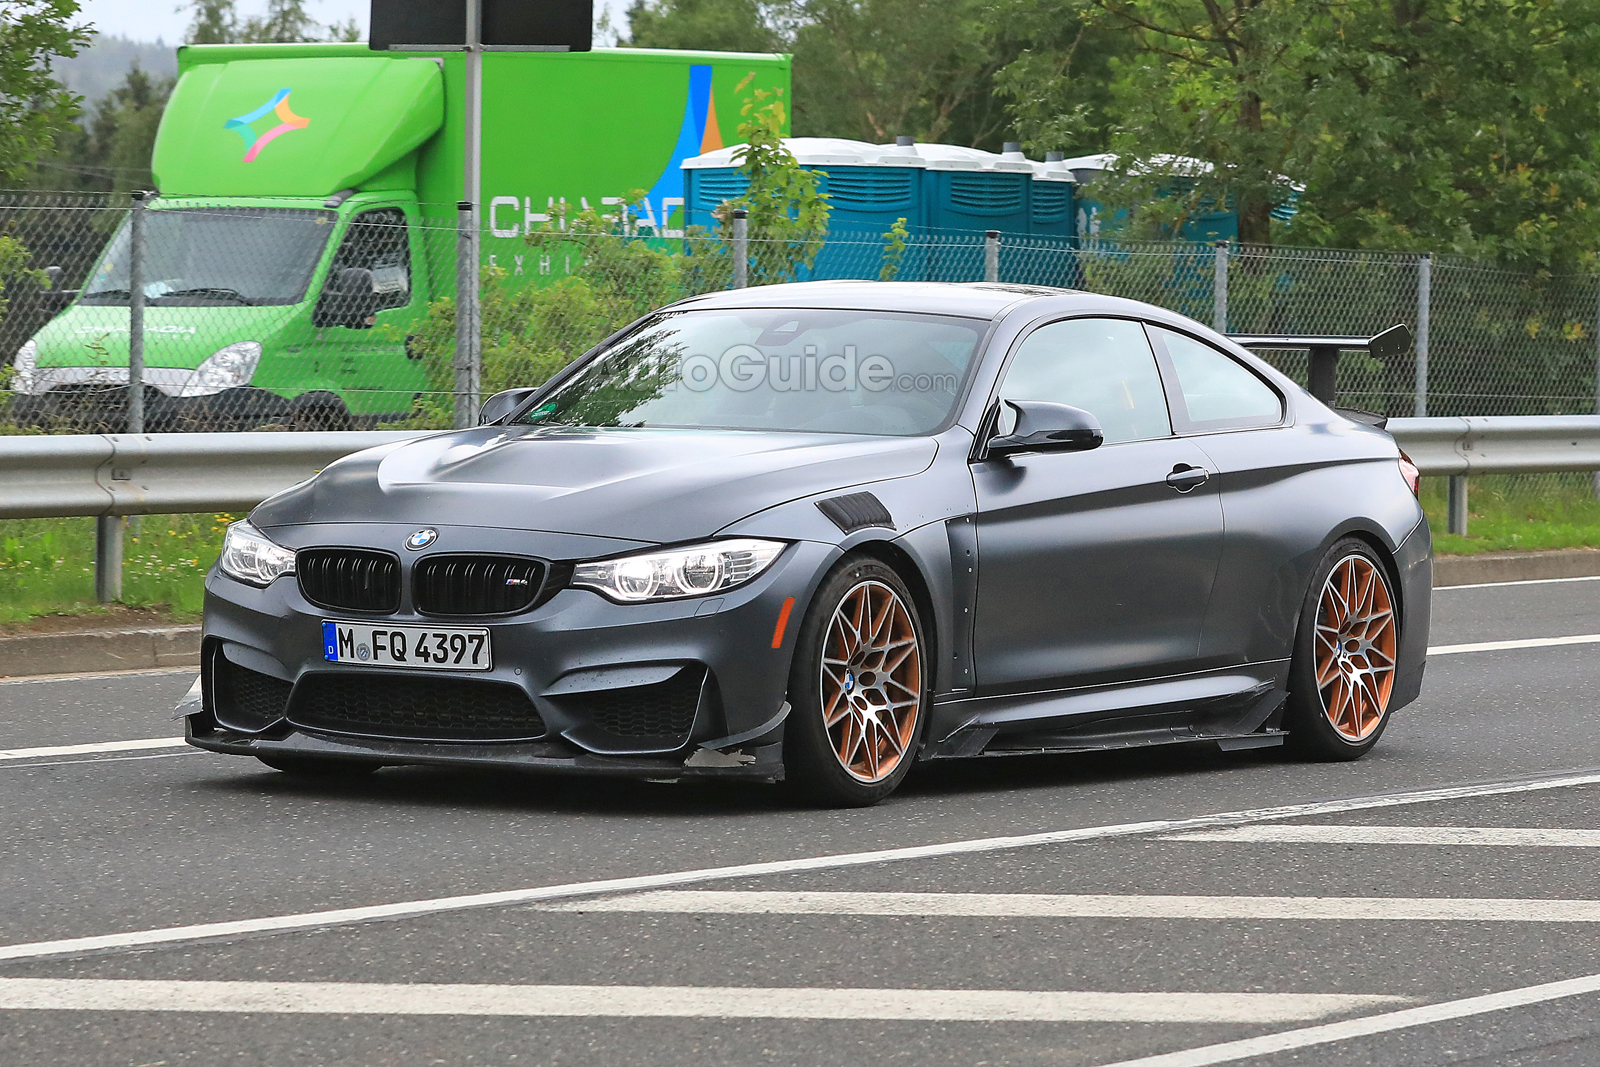 Bmw M4 Gts May Be Getting An Extreme Aero Kit Autoguide